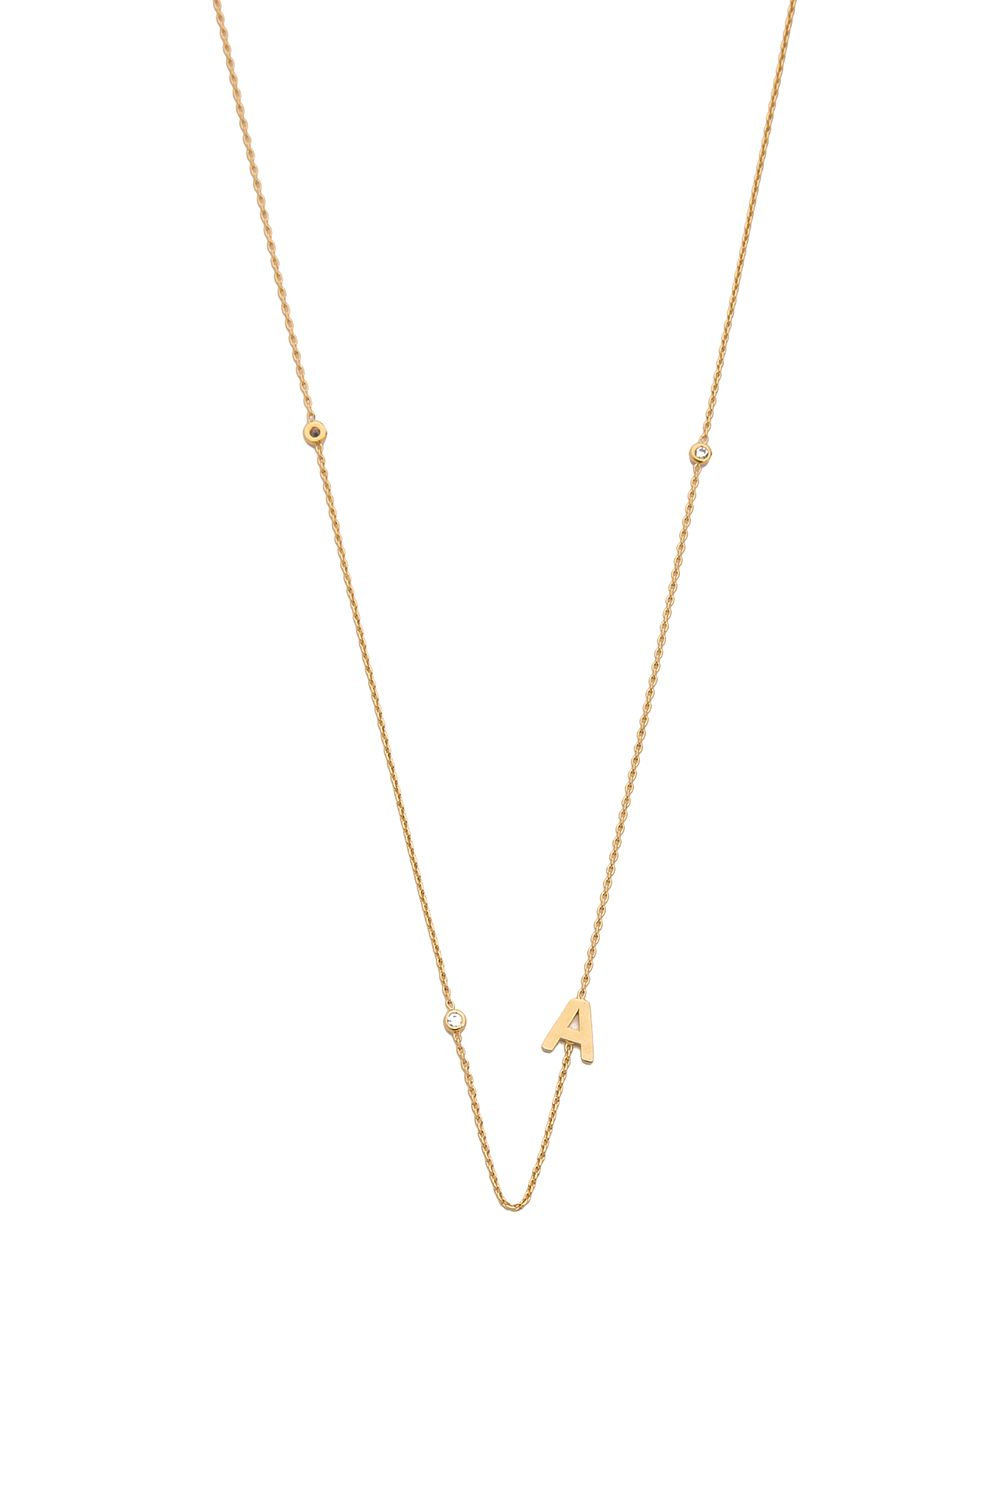 f1147c65d3a Delicate Jewelry - Cheap Gold Jewelry